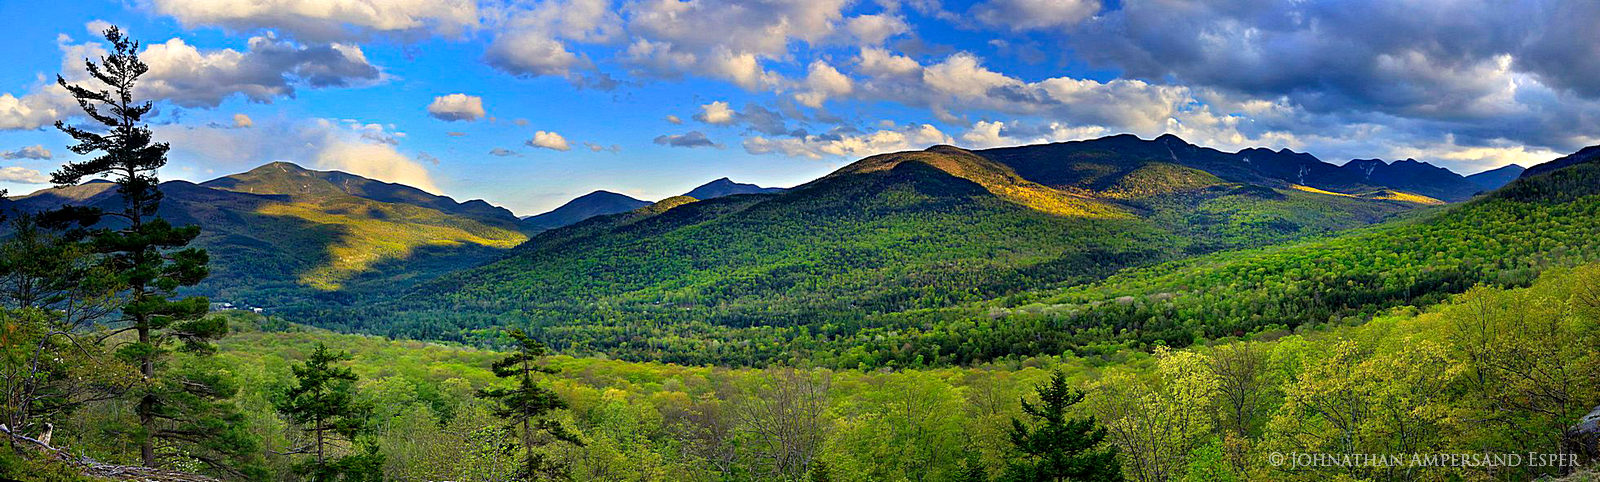 Johns Brook Valley, Big Slide Mt,Big Slide, Great Range,Adirondack High Peaks,High Peaks,range,Adirondack mountains,Adirondacks,mountains,spring,springtime,First Brother,ridgeline,Giant Mt,Lower Wolf , photo